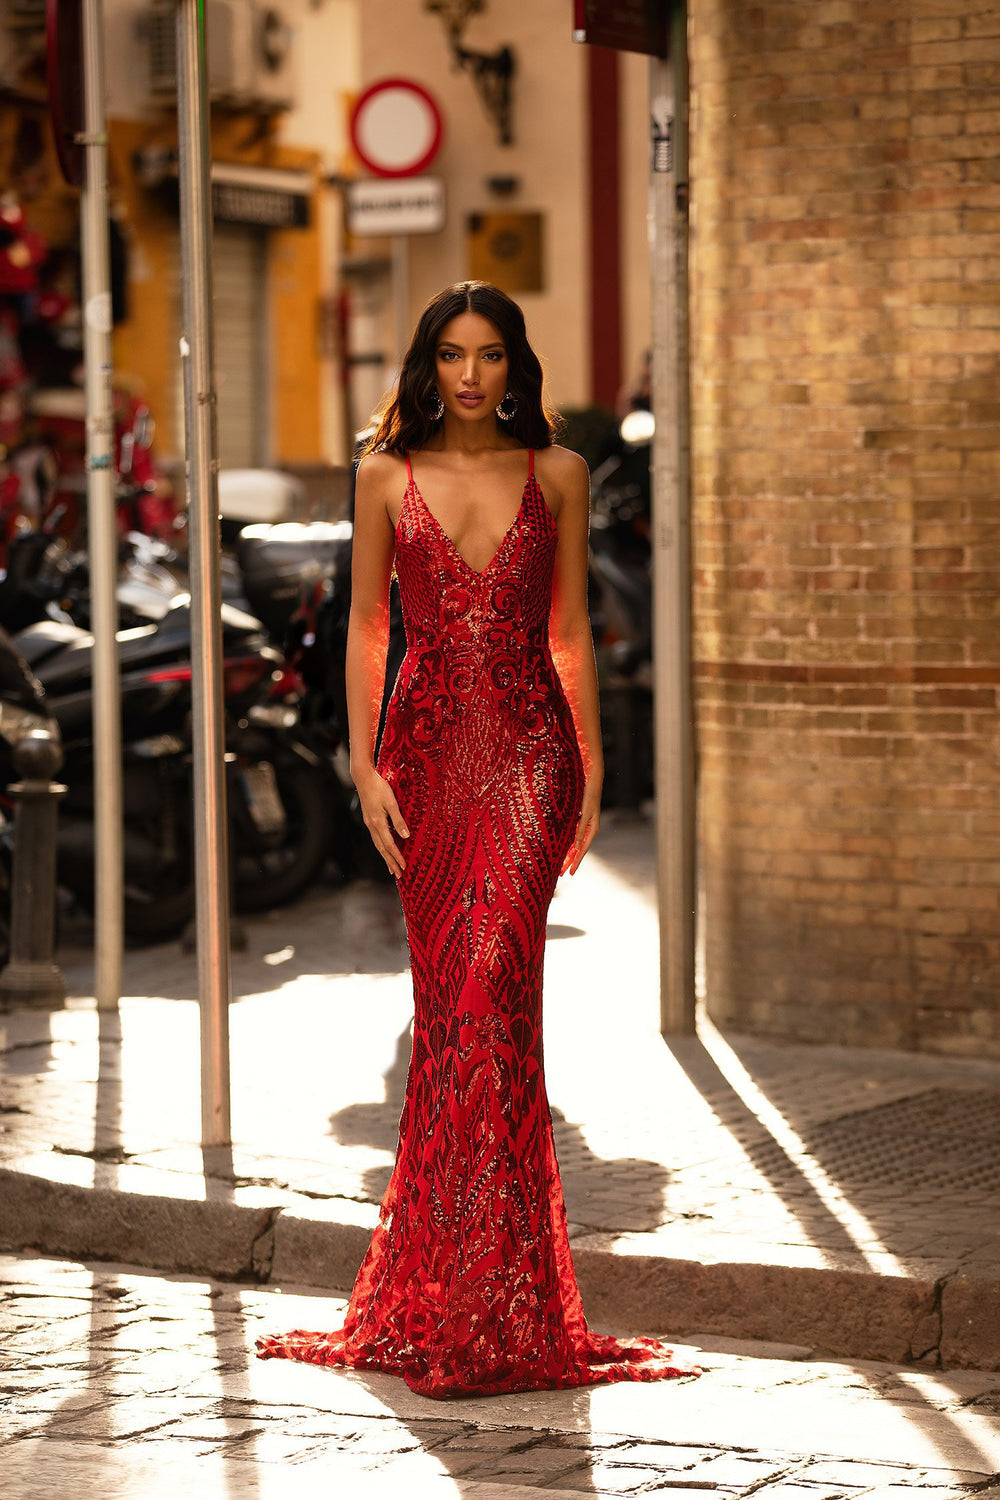 Lulita - Red Patterned Sequin Mermaid Gown with Plunge Neckline